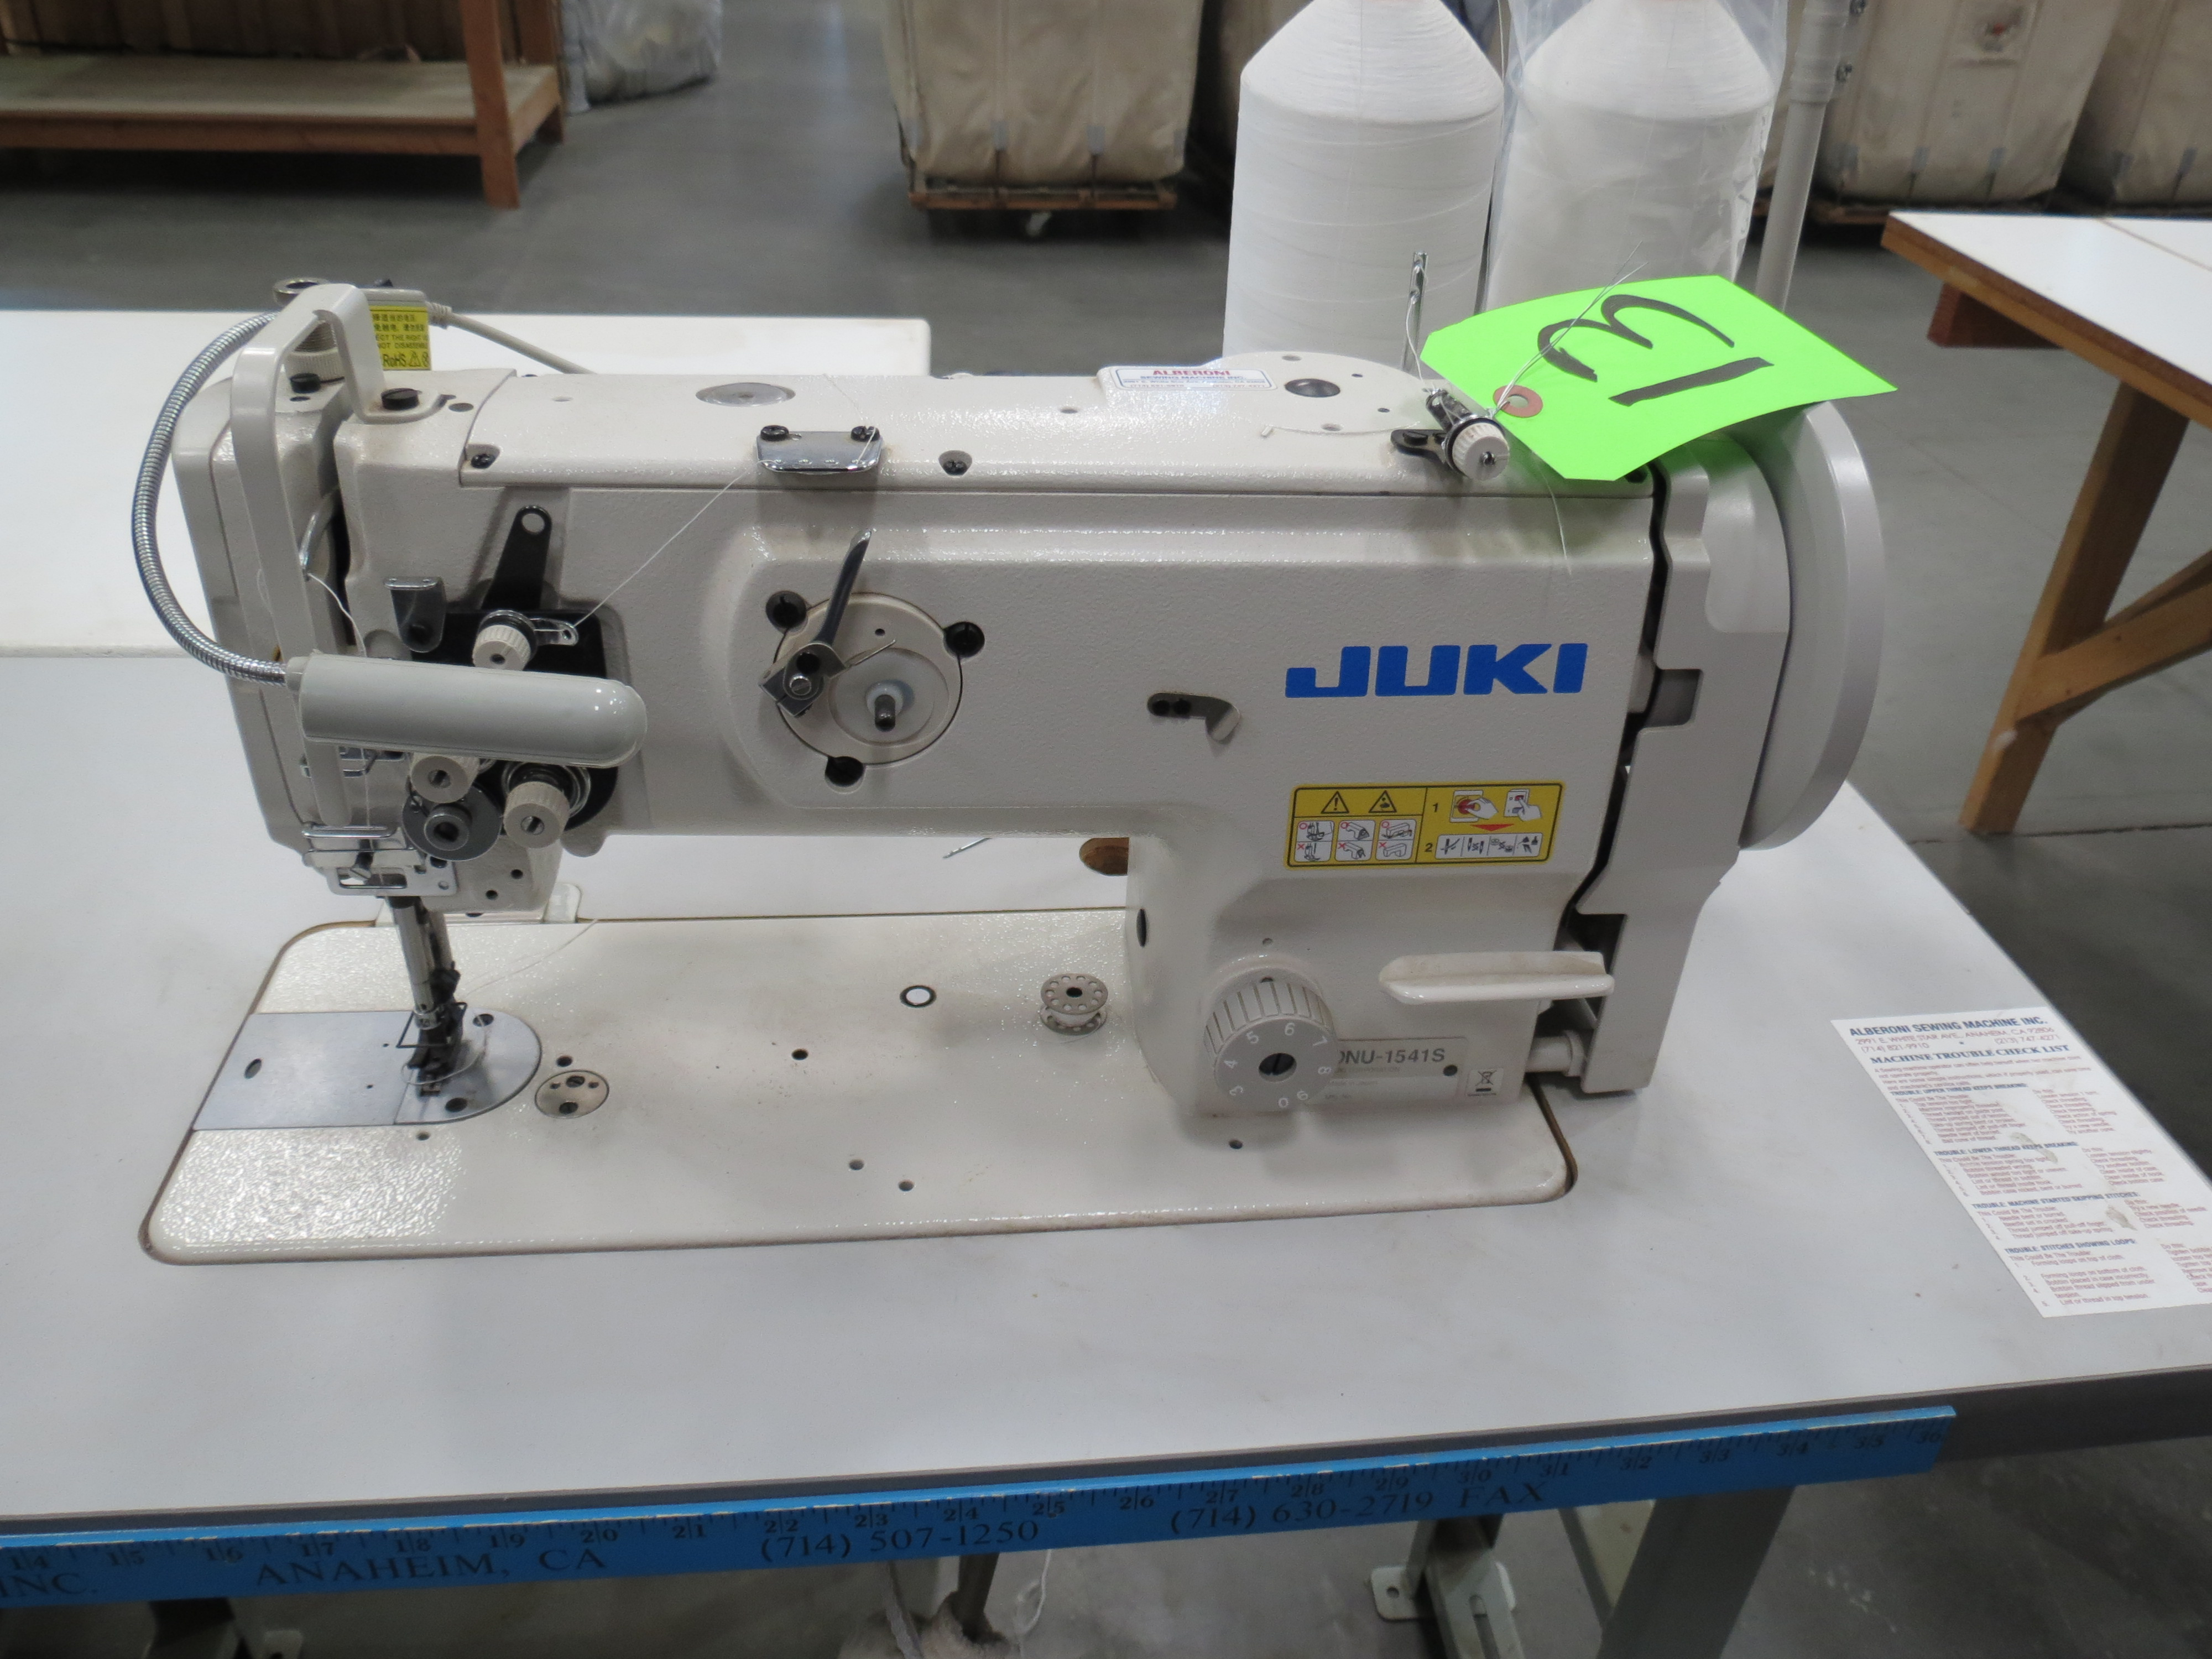 Juki DNU-1541SSingle Needle Sewing Machine, 110V, SN:3D8KF01172 with Table - Image 3 of 3